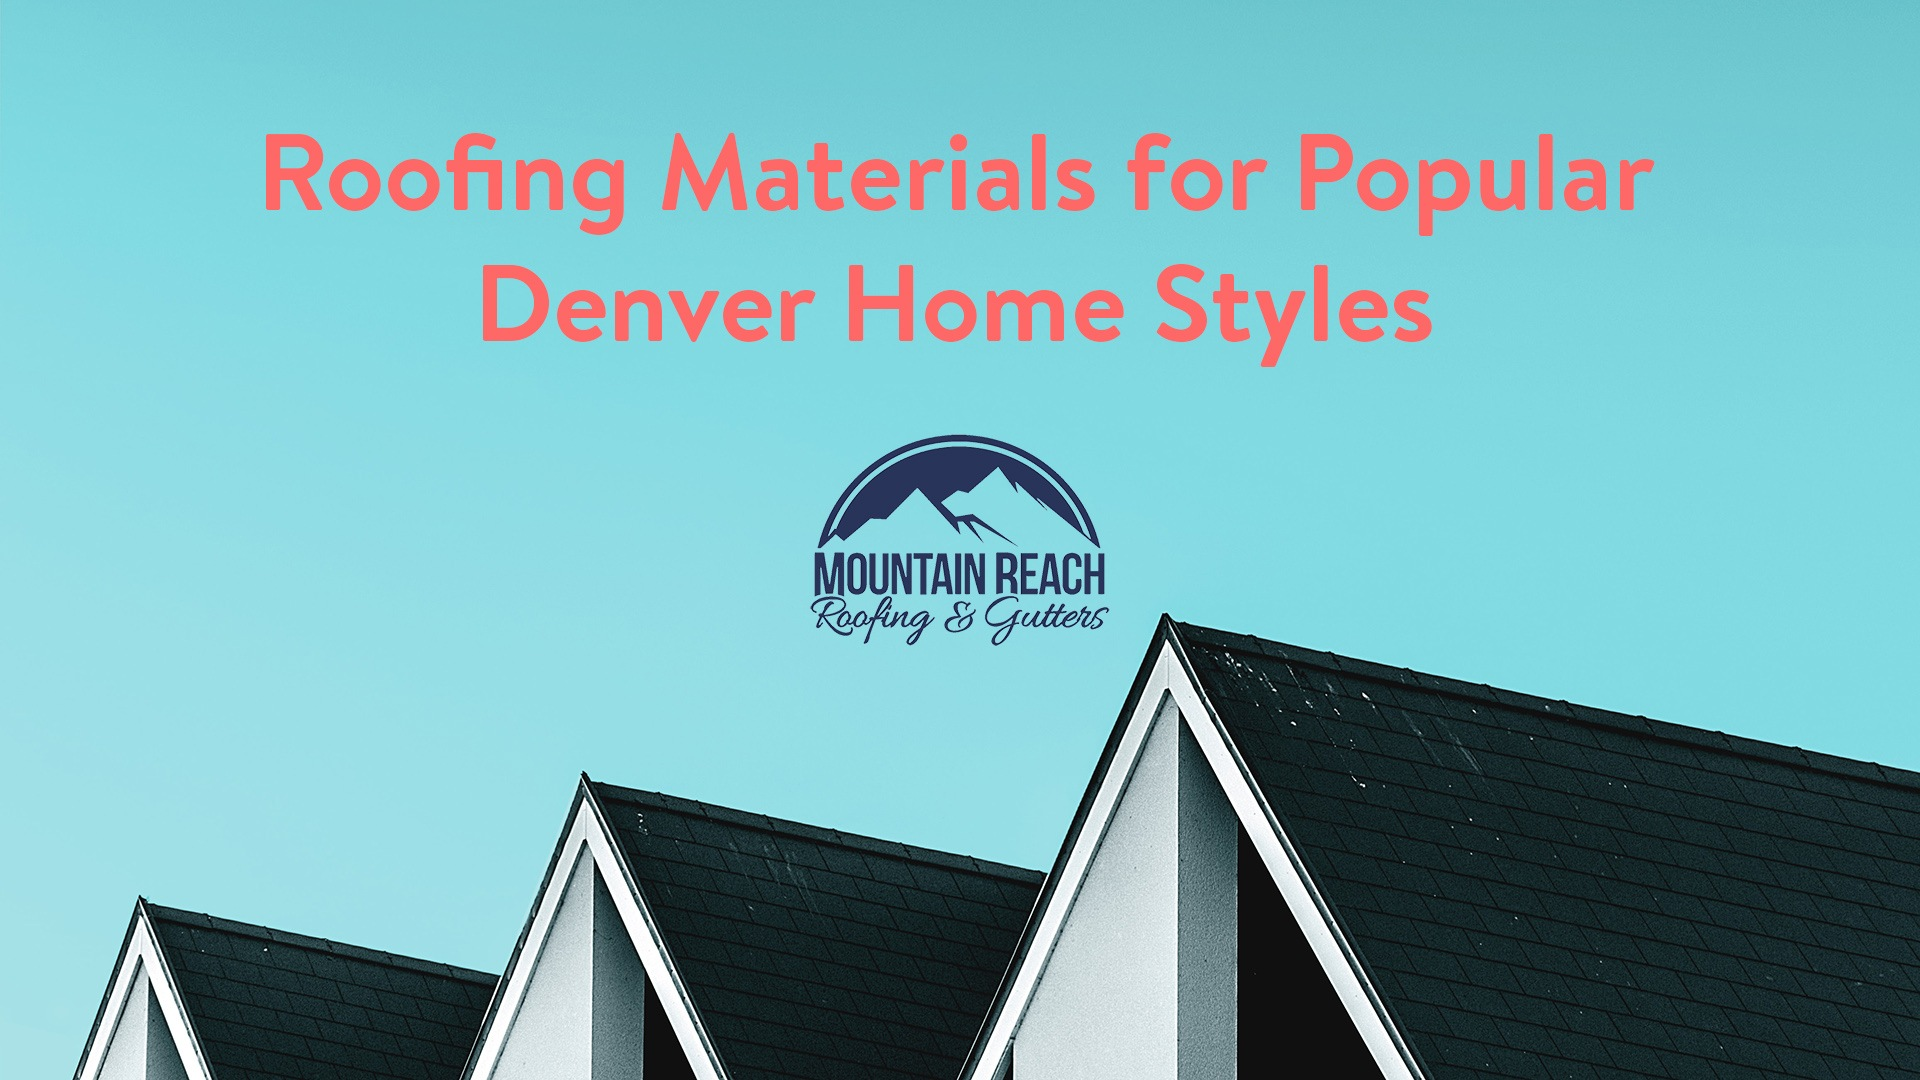 Roofing Materials for Popular Denver Home Styles